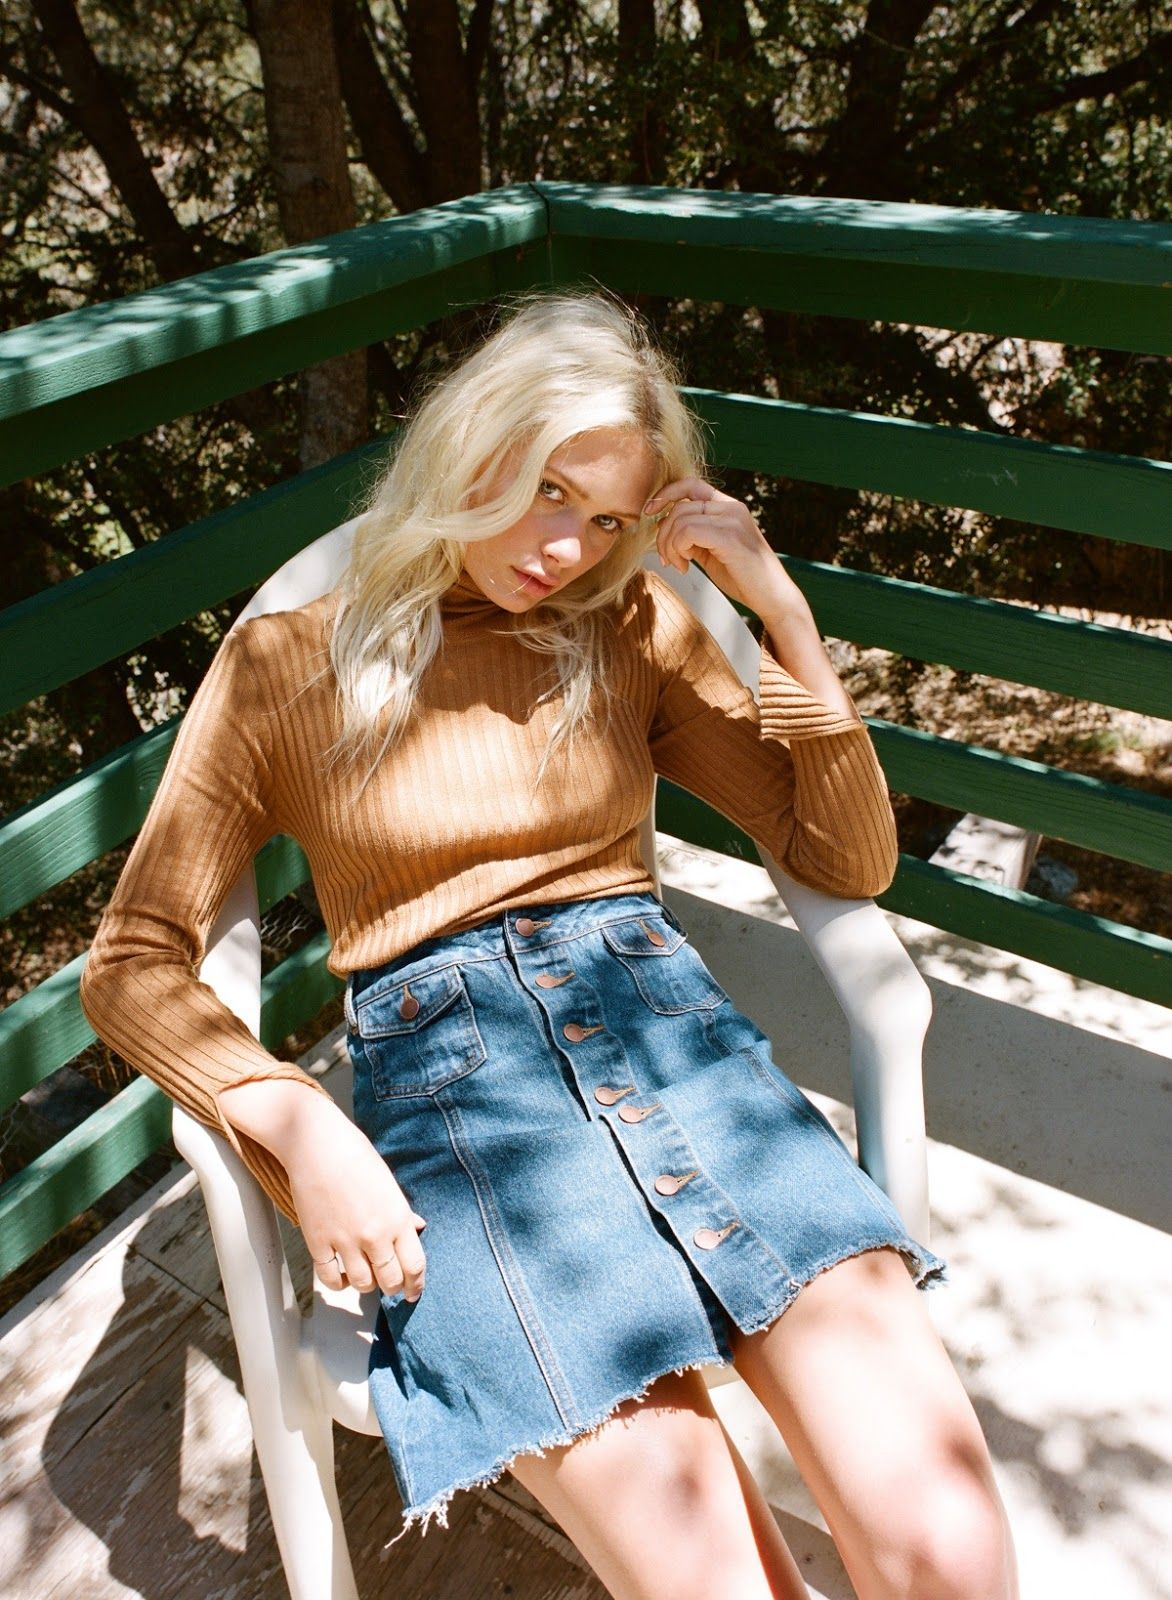 visual optimism; fashion editorials, shows, campaigns & more!: delilah parillo by darren ankenman for edt by glassons #5